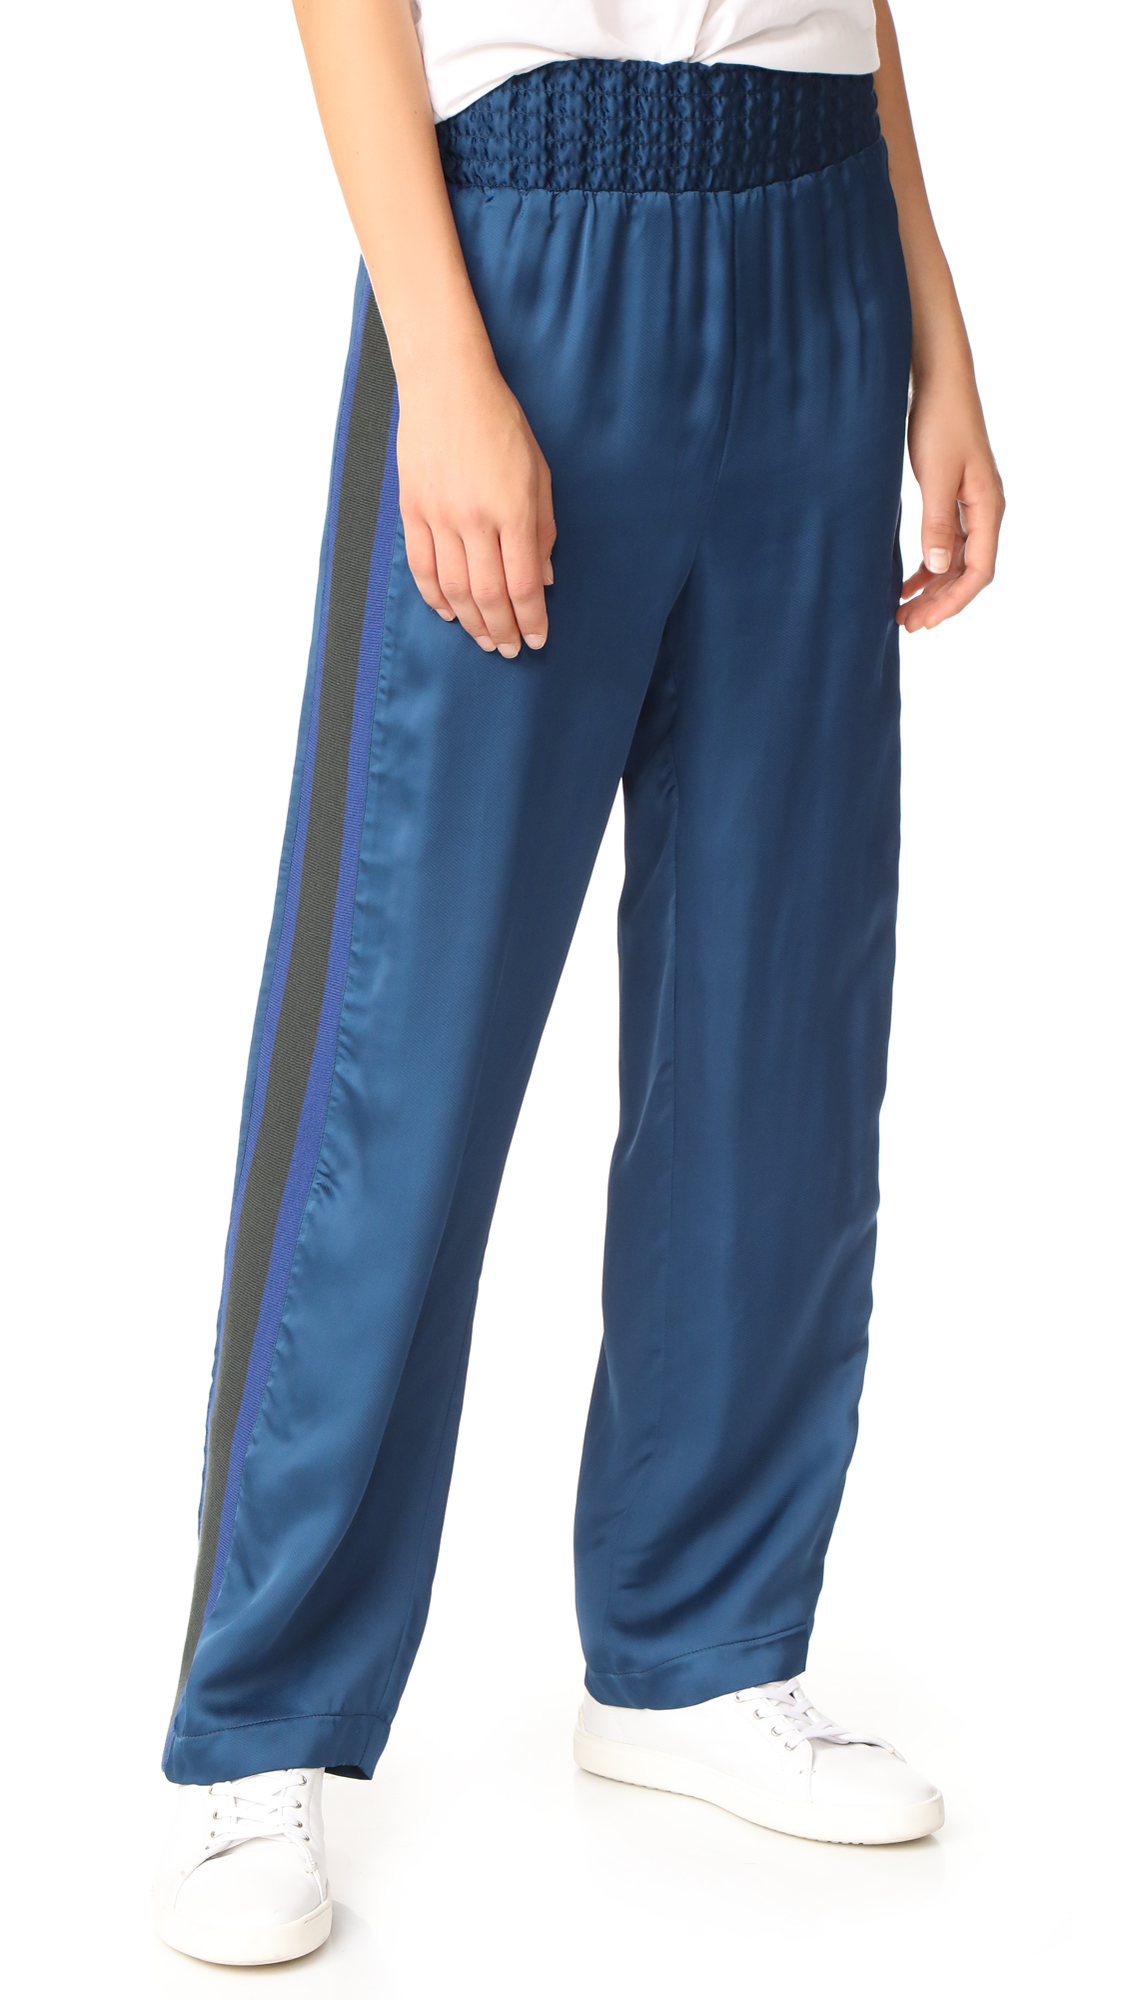 Maggie Marilyn Change the Rules Track Pants - Blue